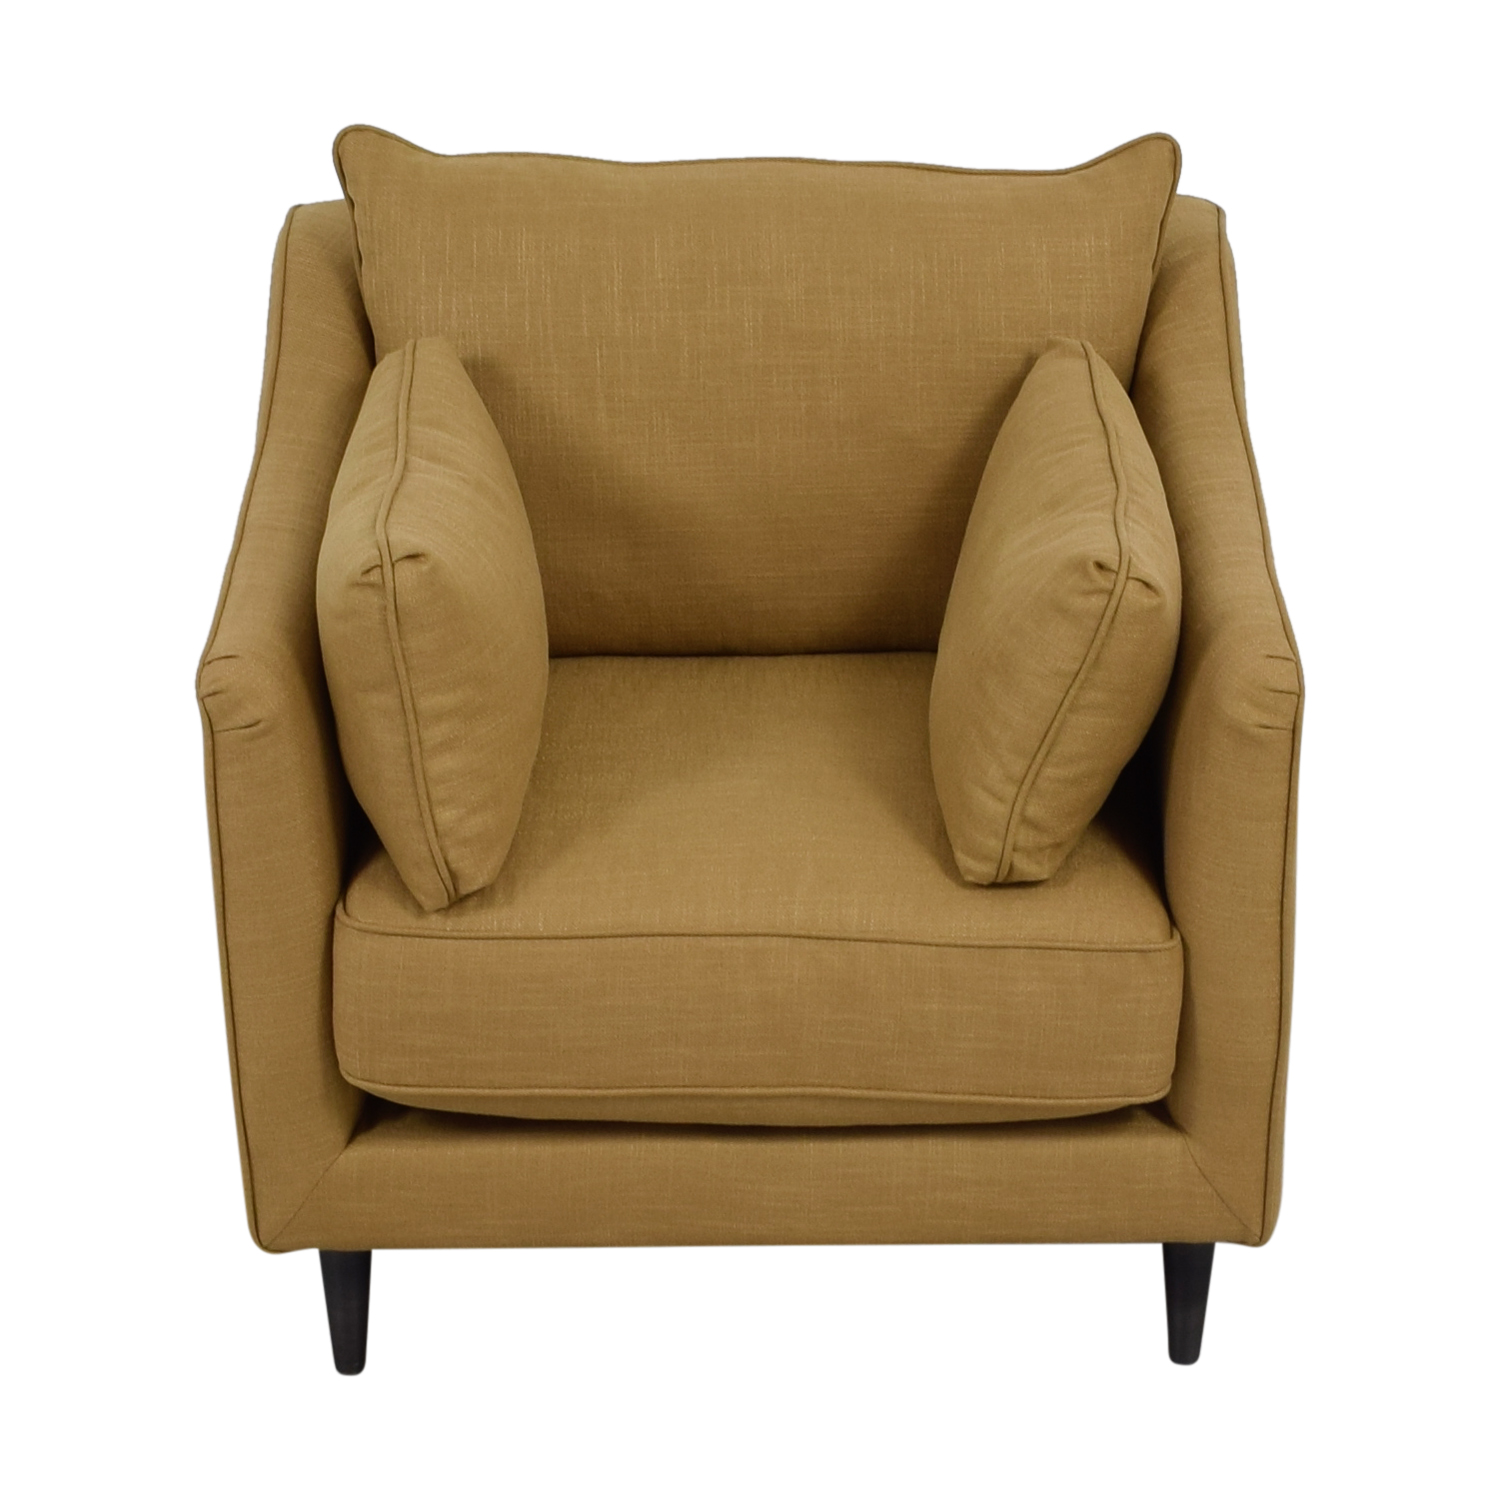 Caitlin Tan Arm Chair sale